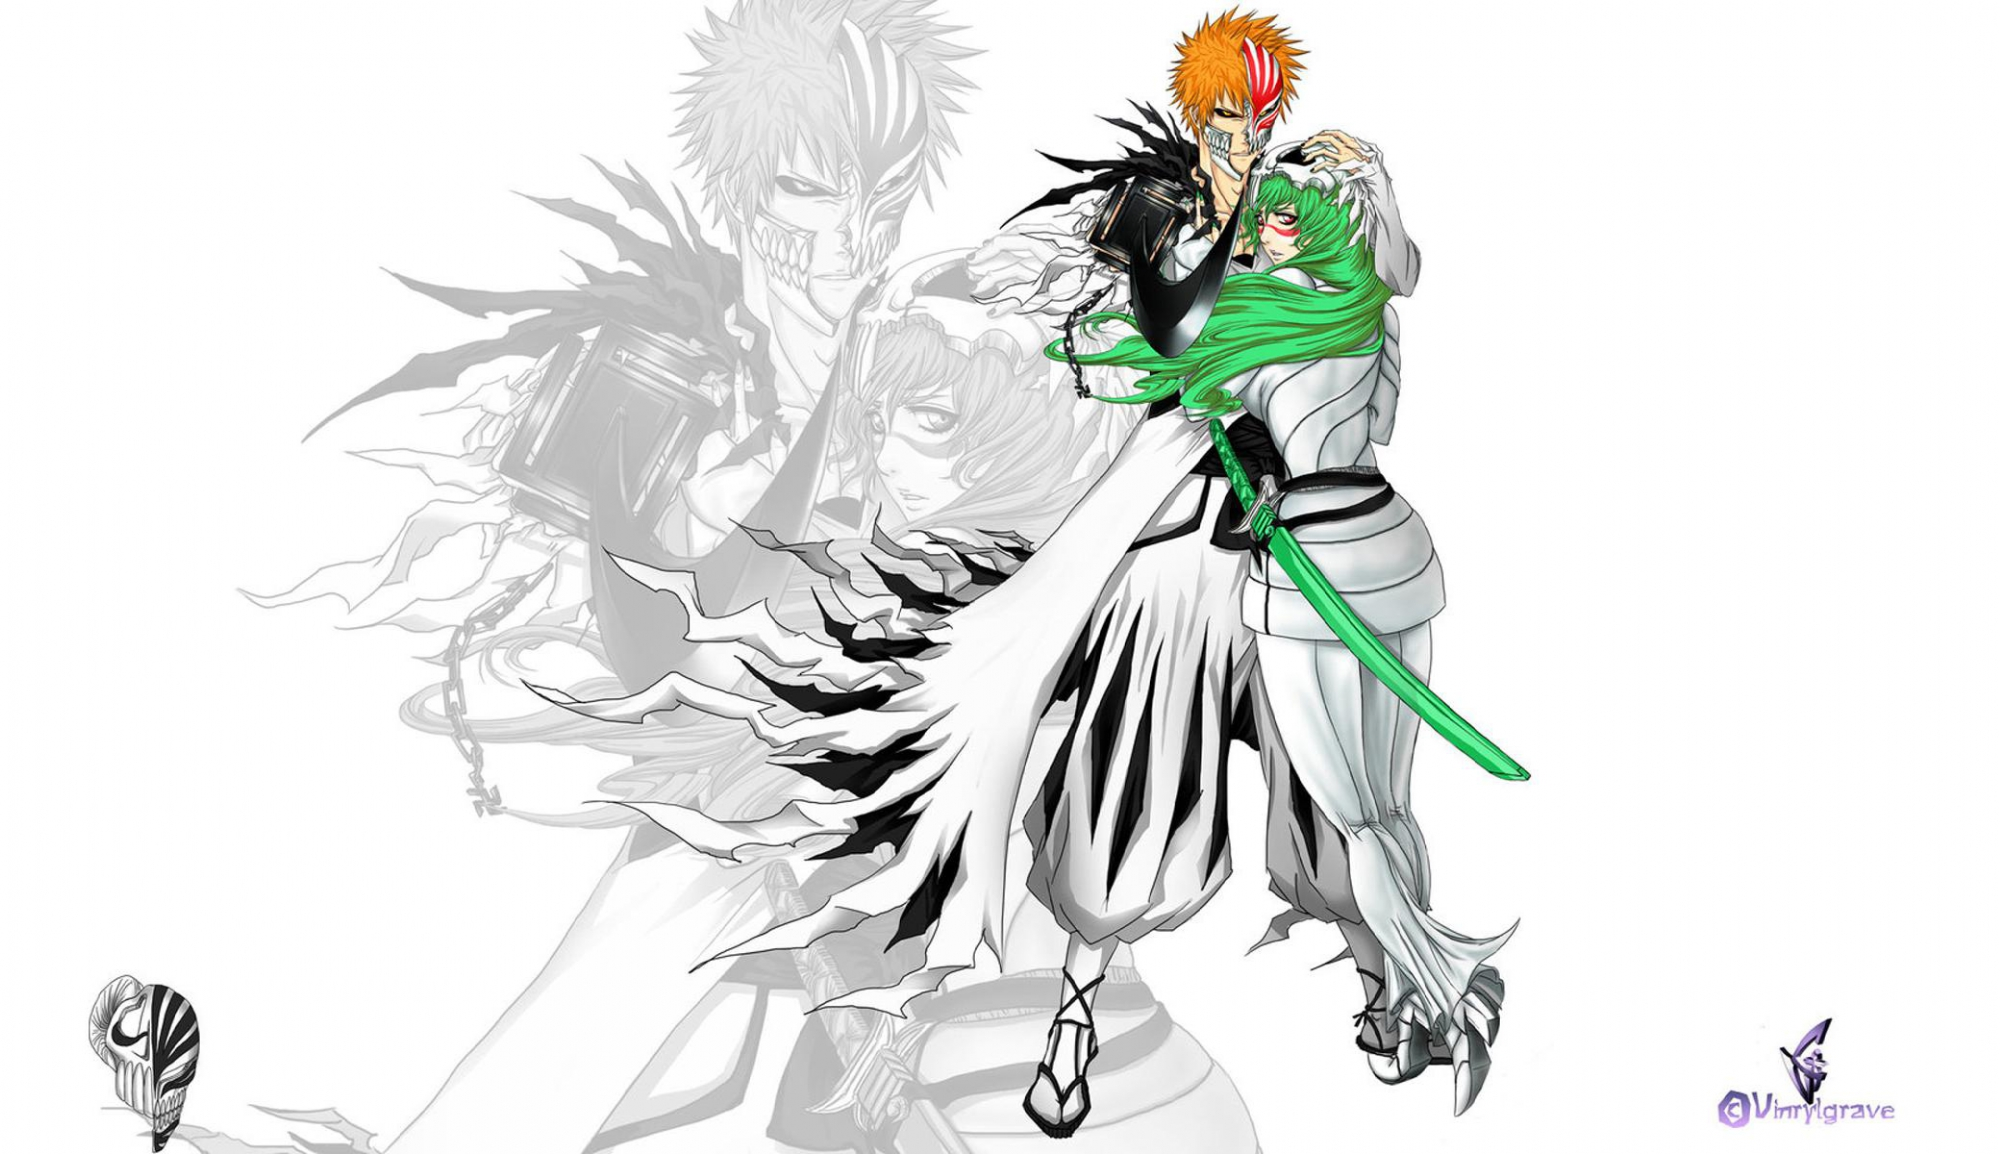 bleach green_hair kurosaki_ichigo long_hair neliel_tu_oderschvank orange_hair short_hair sword weapon white yellow_eyes